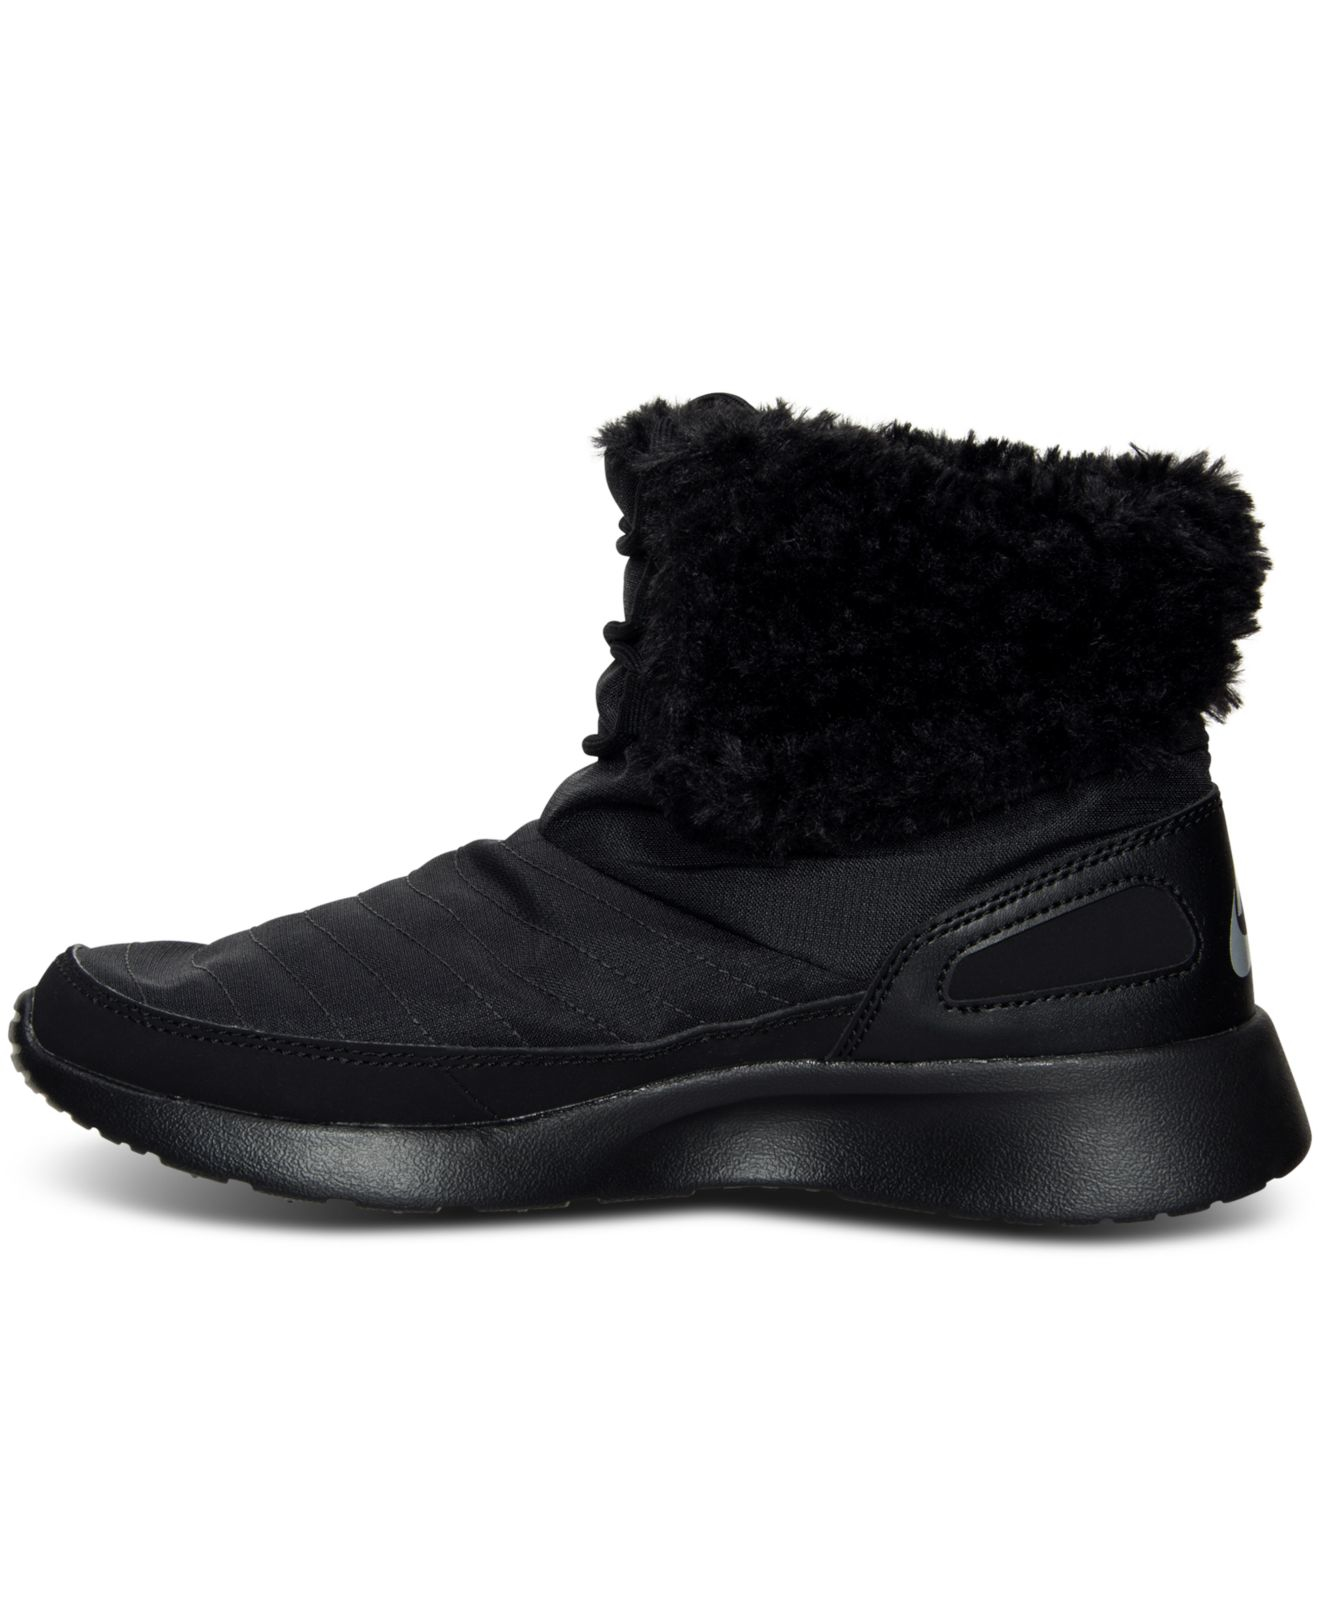 Nike Black Women's Kaishi Winter High Sneakerboots From Finish Line